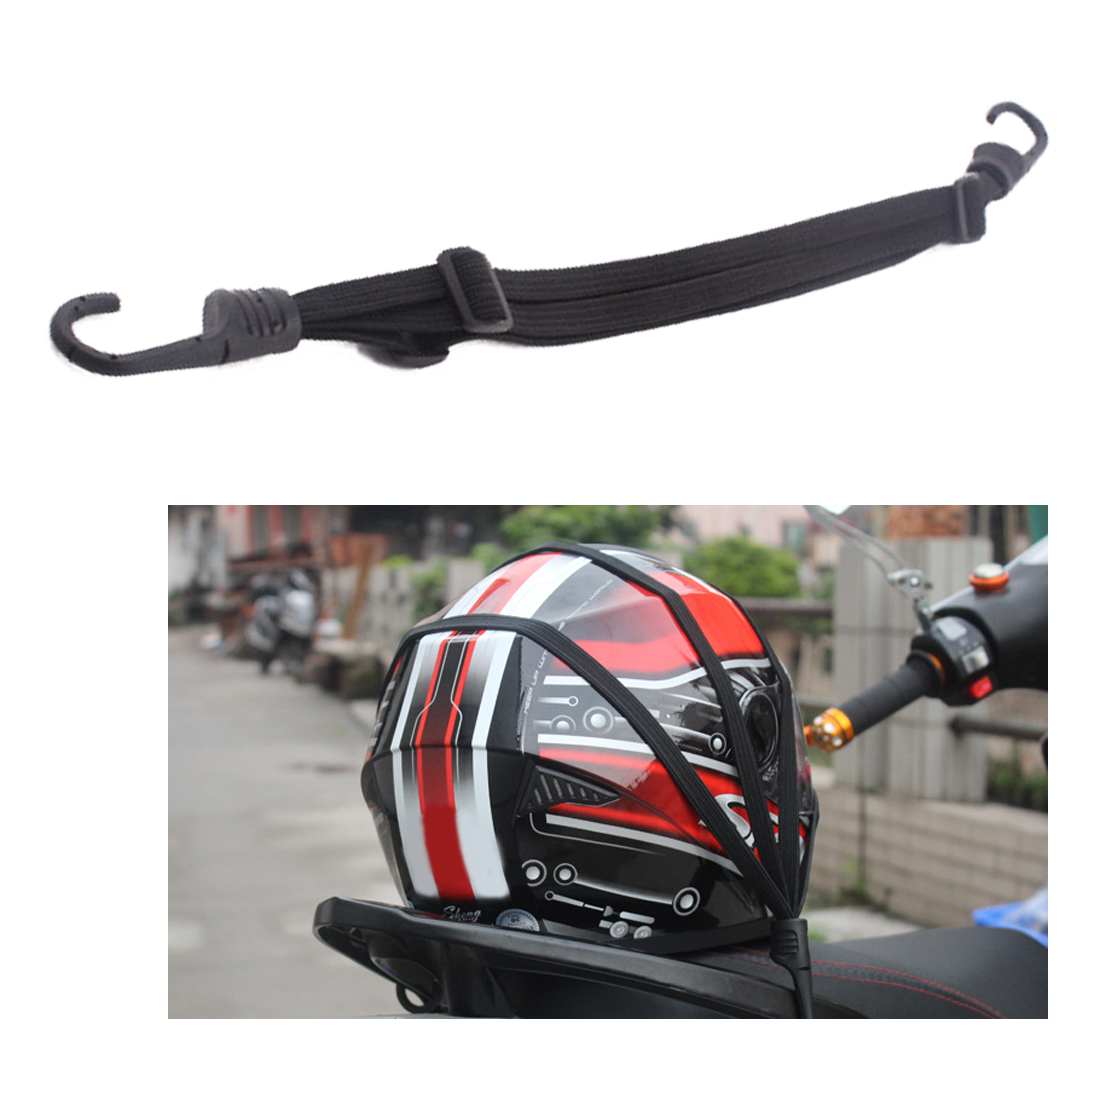 Dewtreetali 2 Hooks Motorcycles Strength Retractable Helmet Luggage Elastic Rope Strap